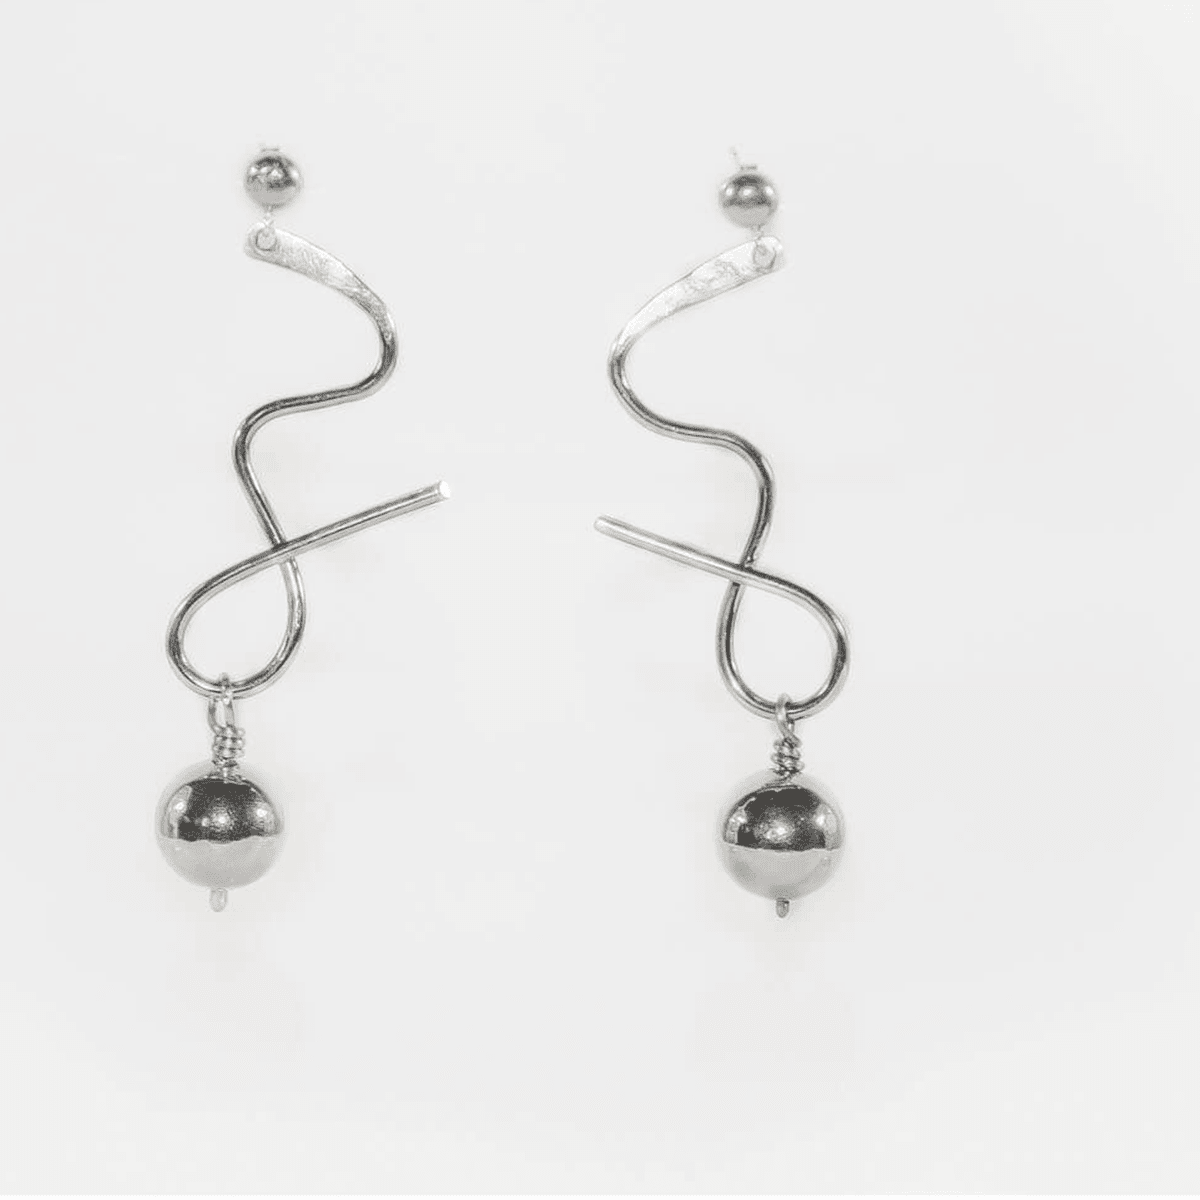 Steel Waves Drop Dangler Swing Earrings - Tanzire Store